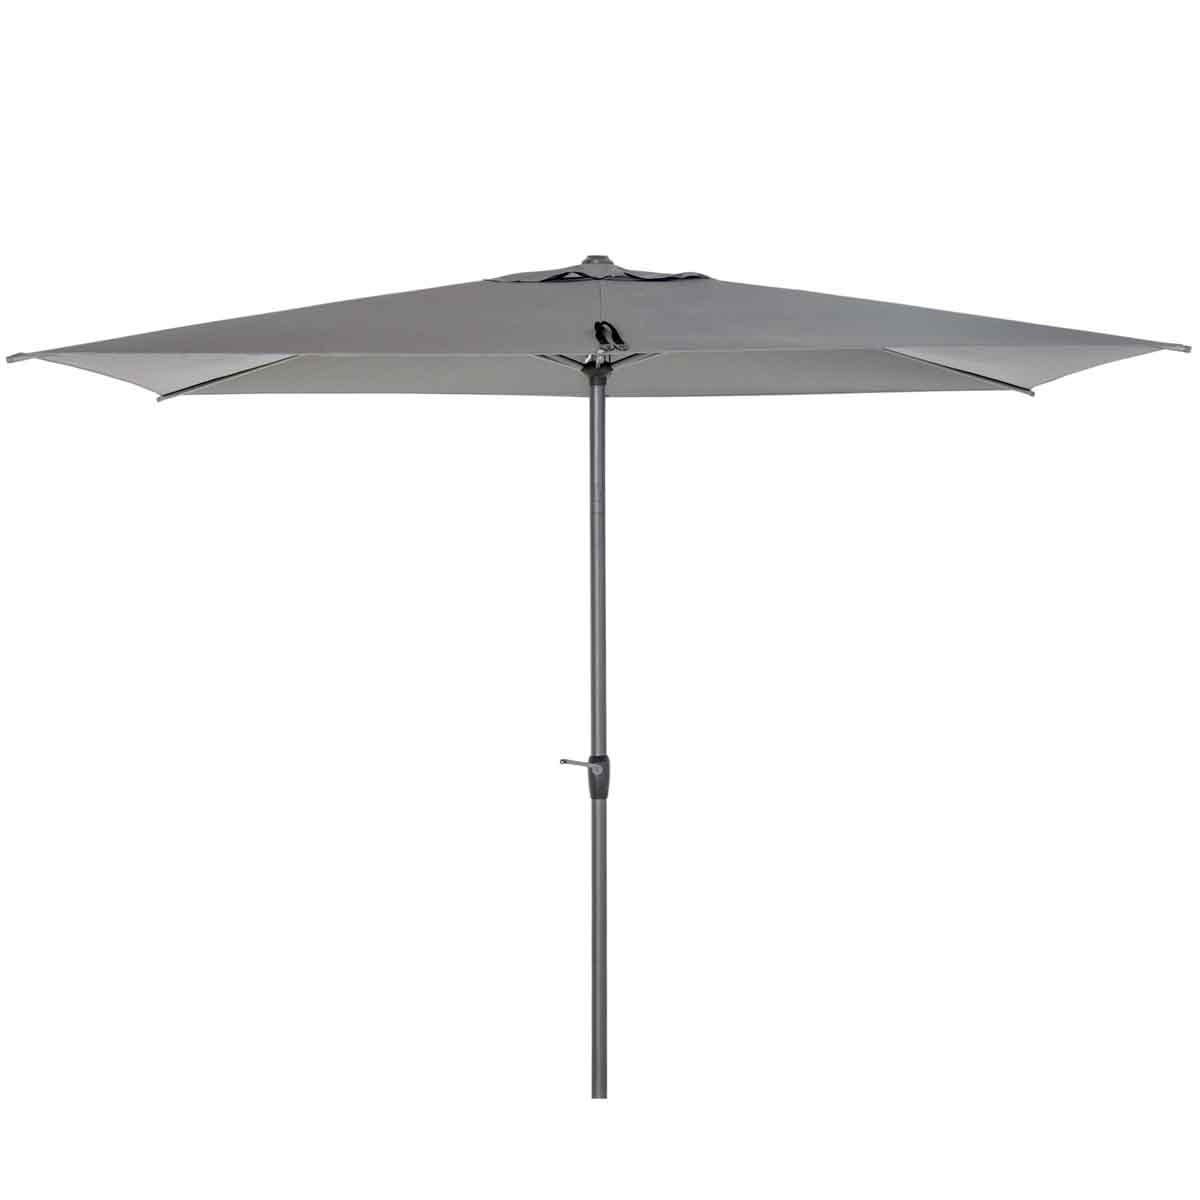 Outsunny 3 x 2m Rectangular Parasol (base not included) - Grey